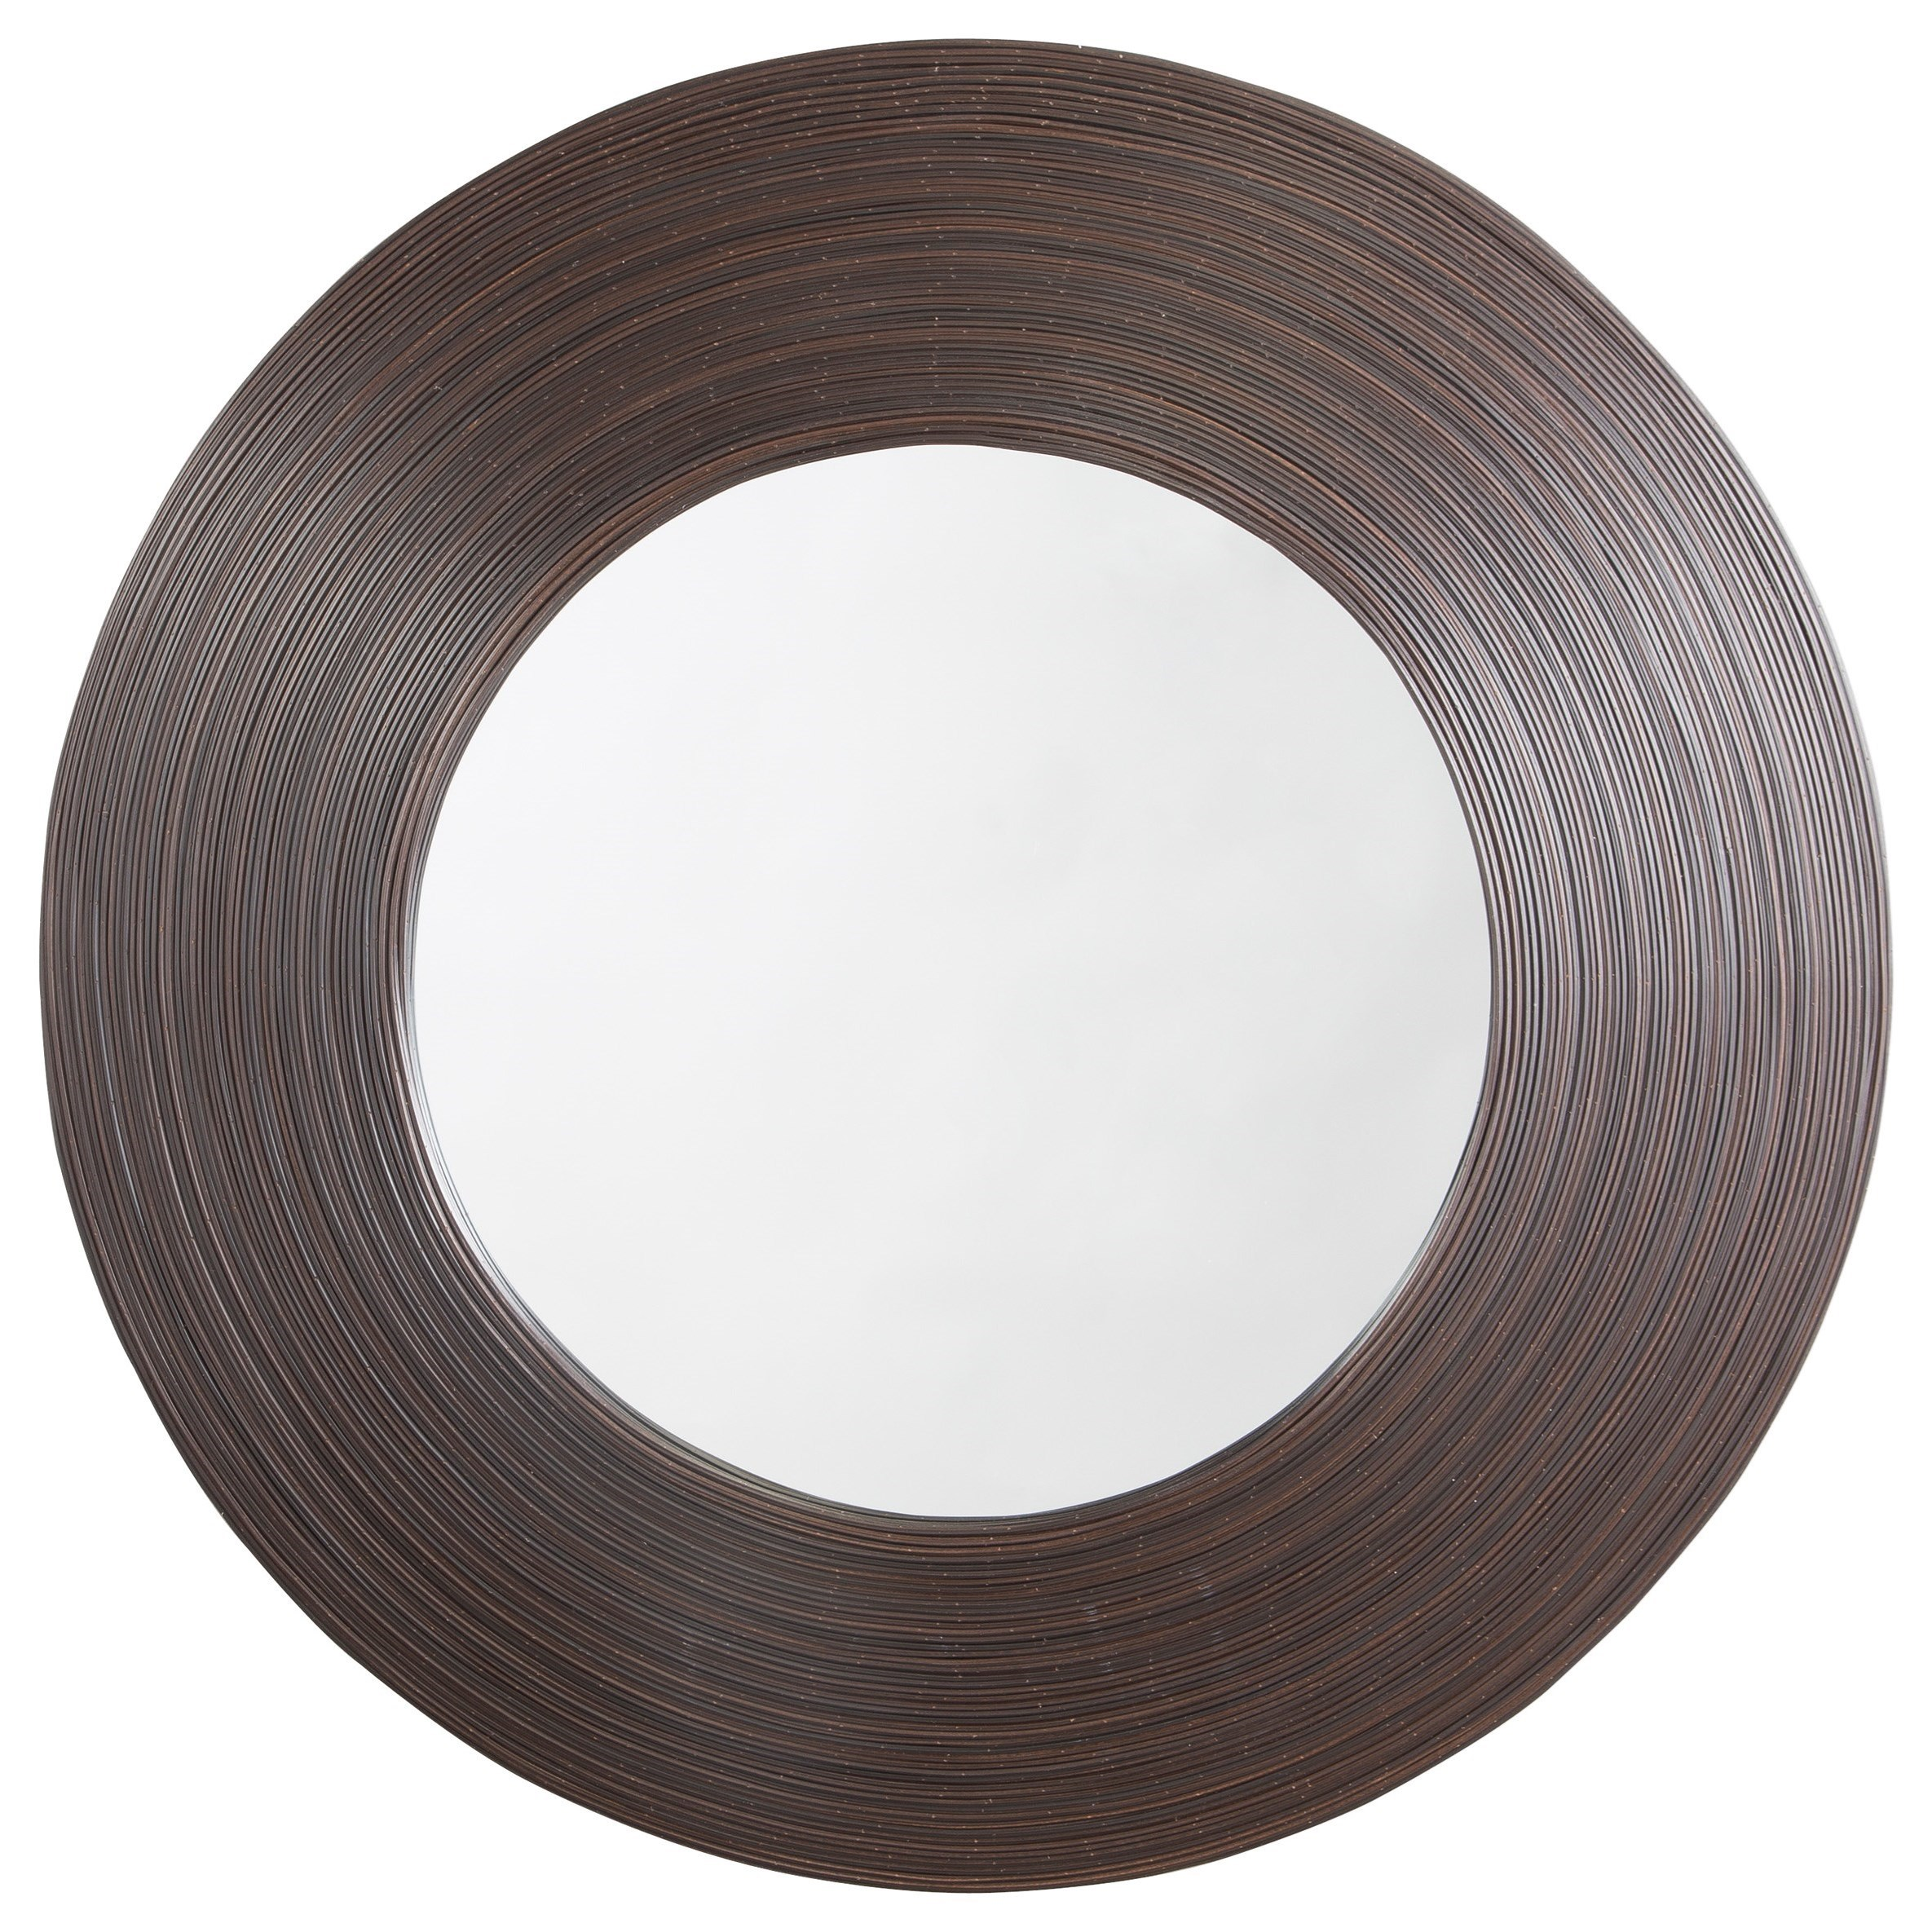 Signature Design by Ashley Furniture Accent Mirrors Odeletta Brown Accent Mirror - Item Number: A8010022